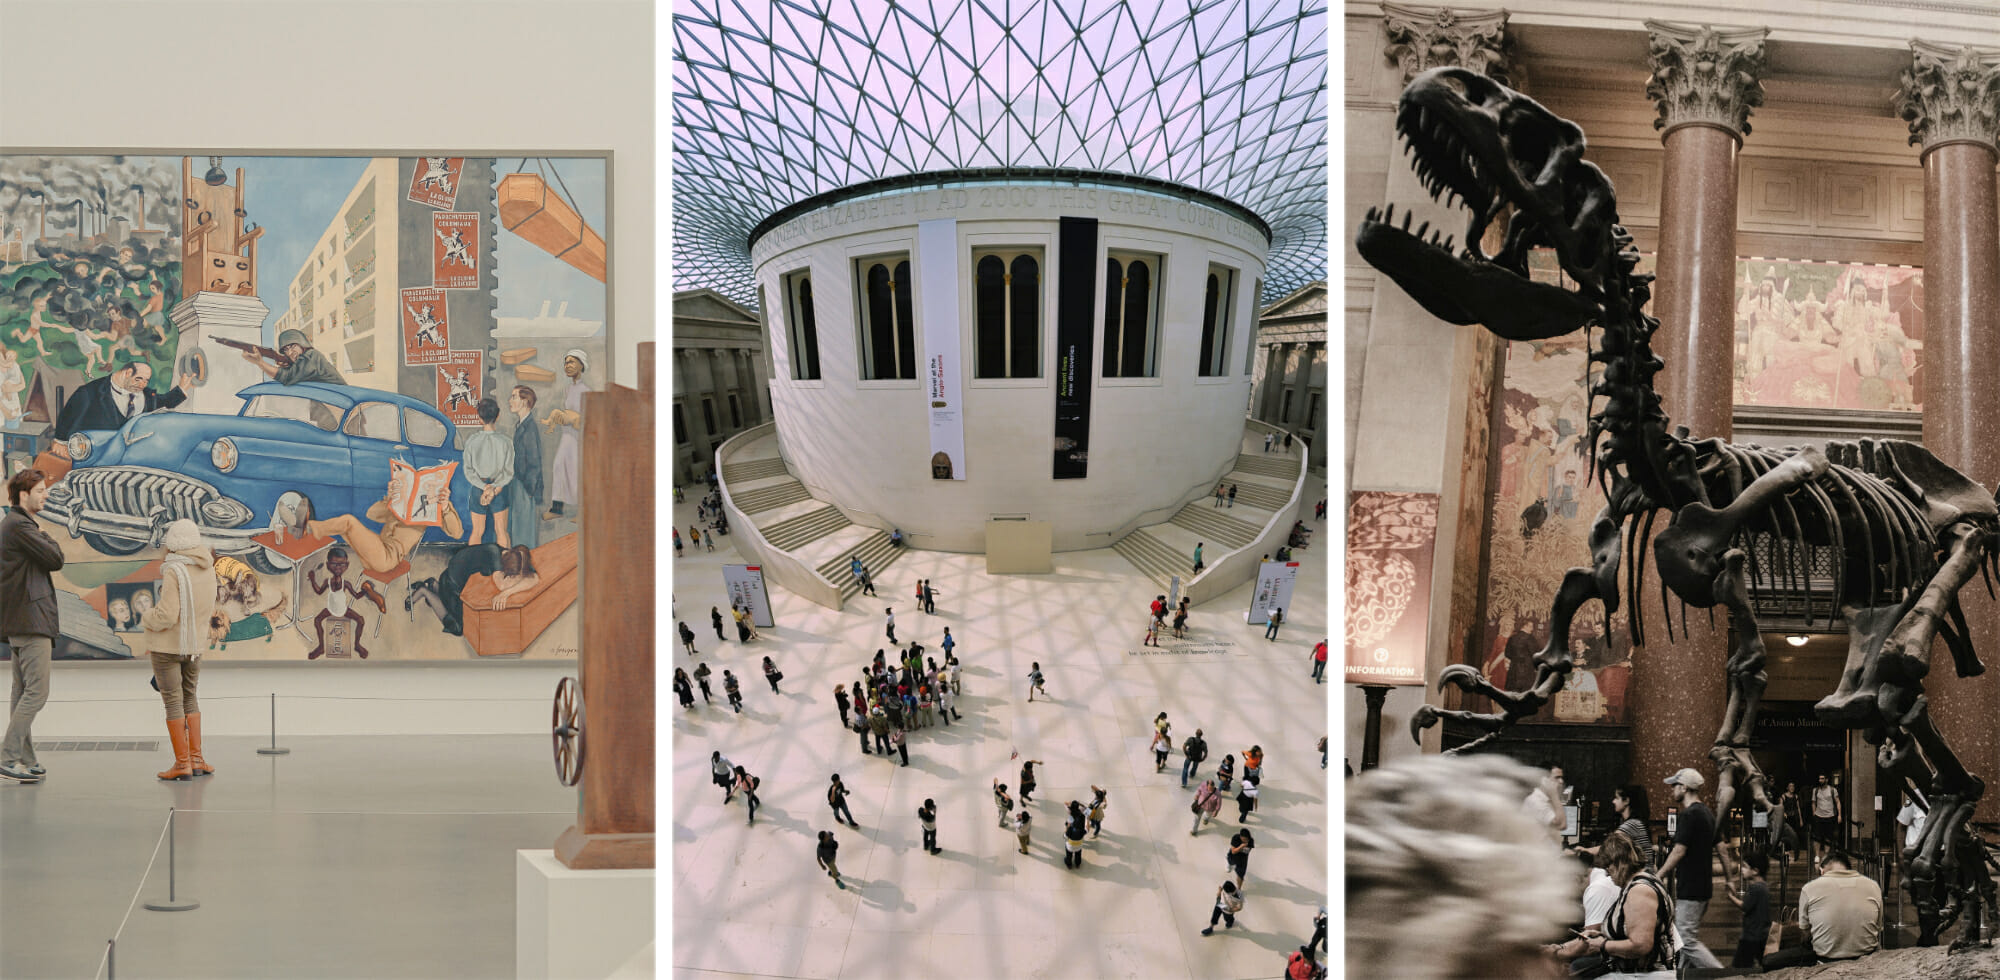 10 Free Museums in London You Shouldn't Miss